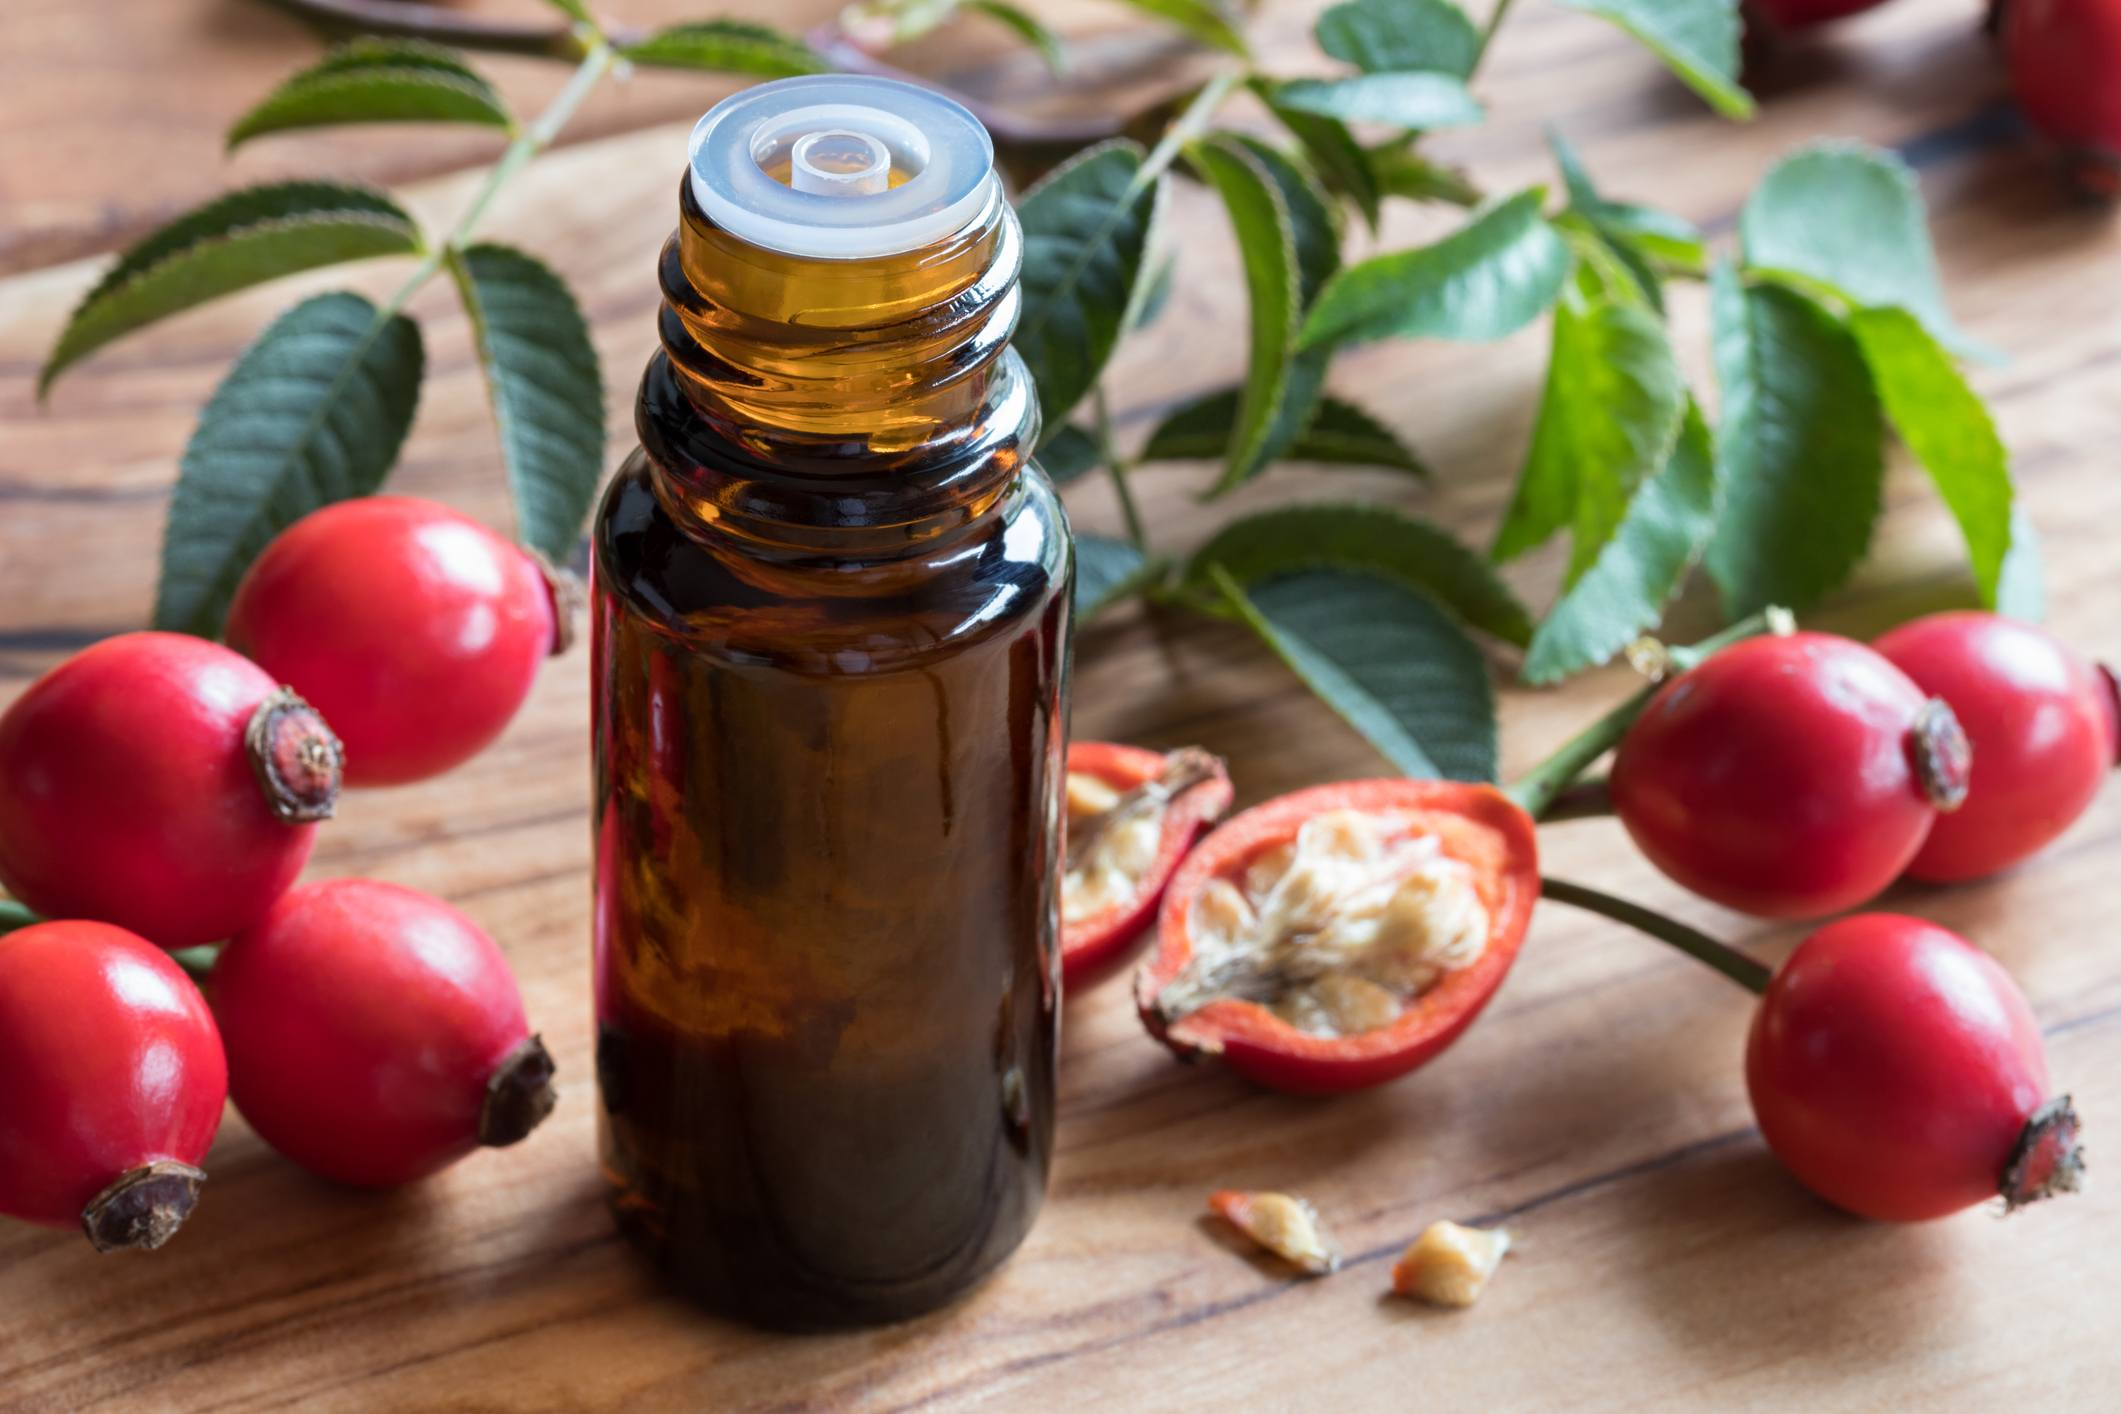 A bottle of rosehip seed oil